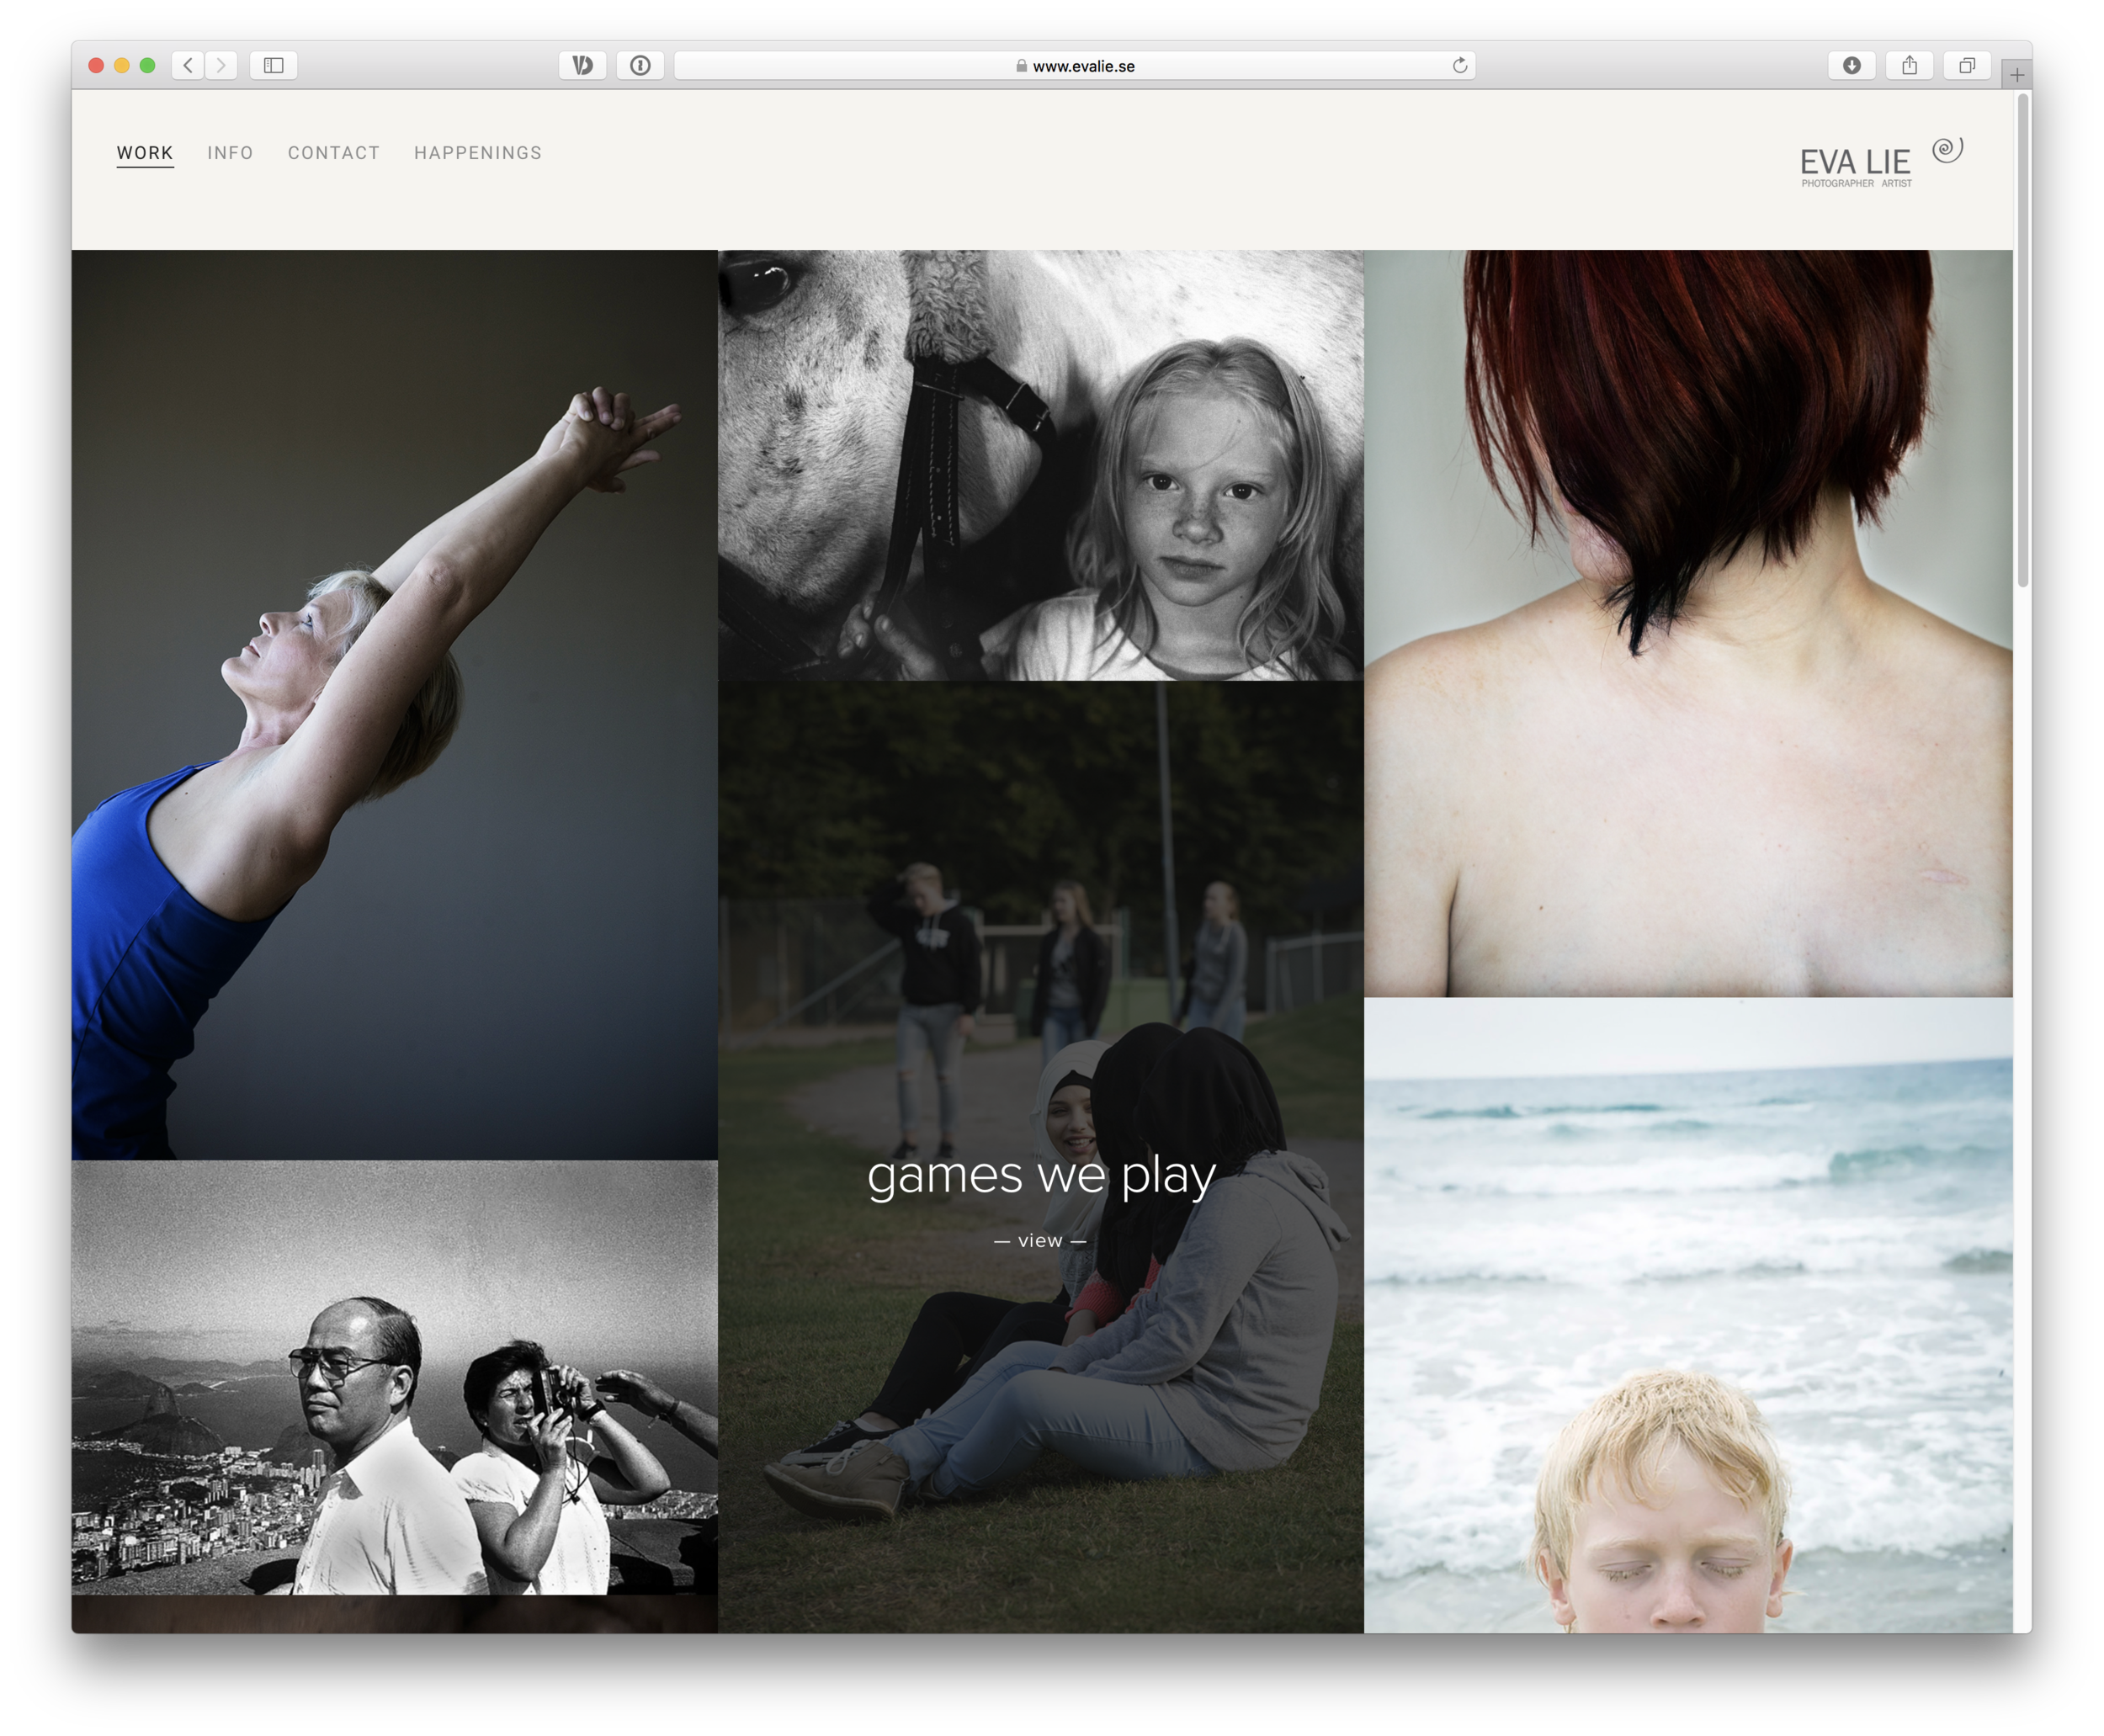 The new website emphasizes Eva Lie as a storyteller. We loved creating this view into her work